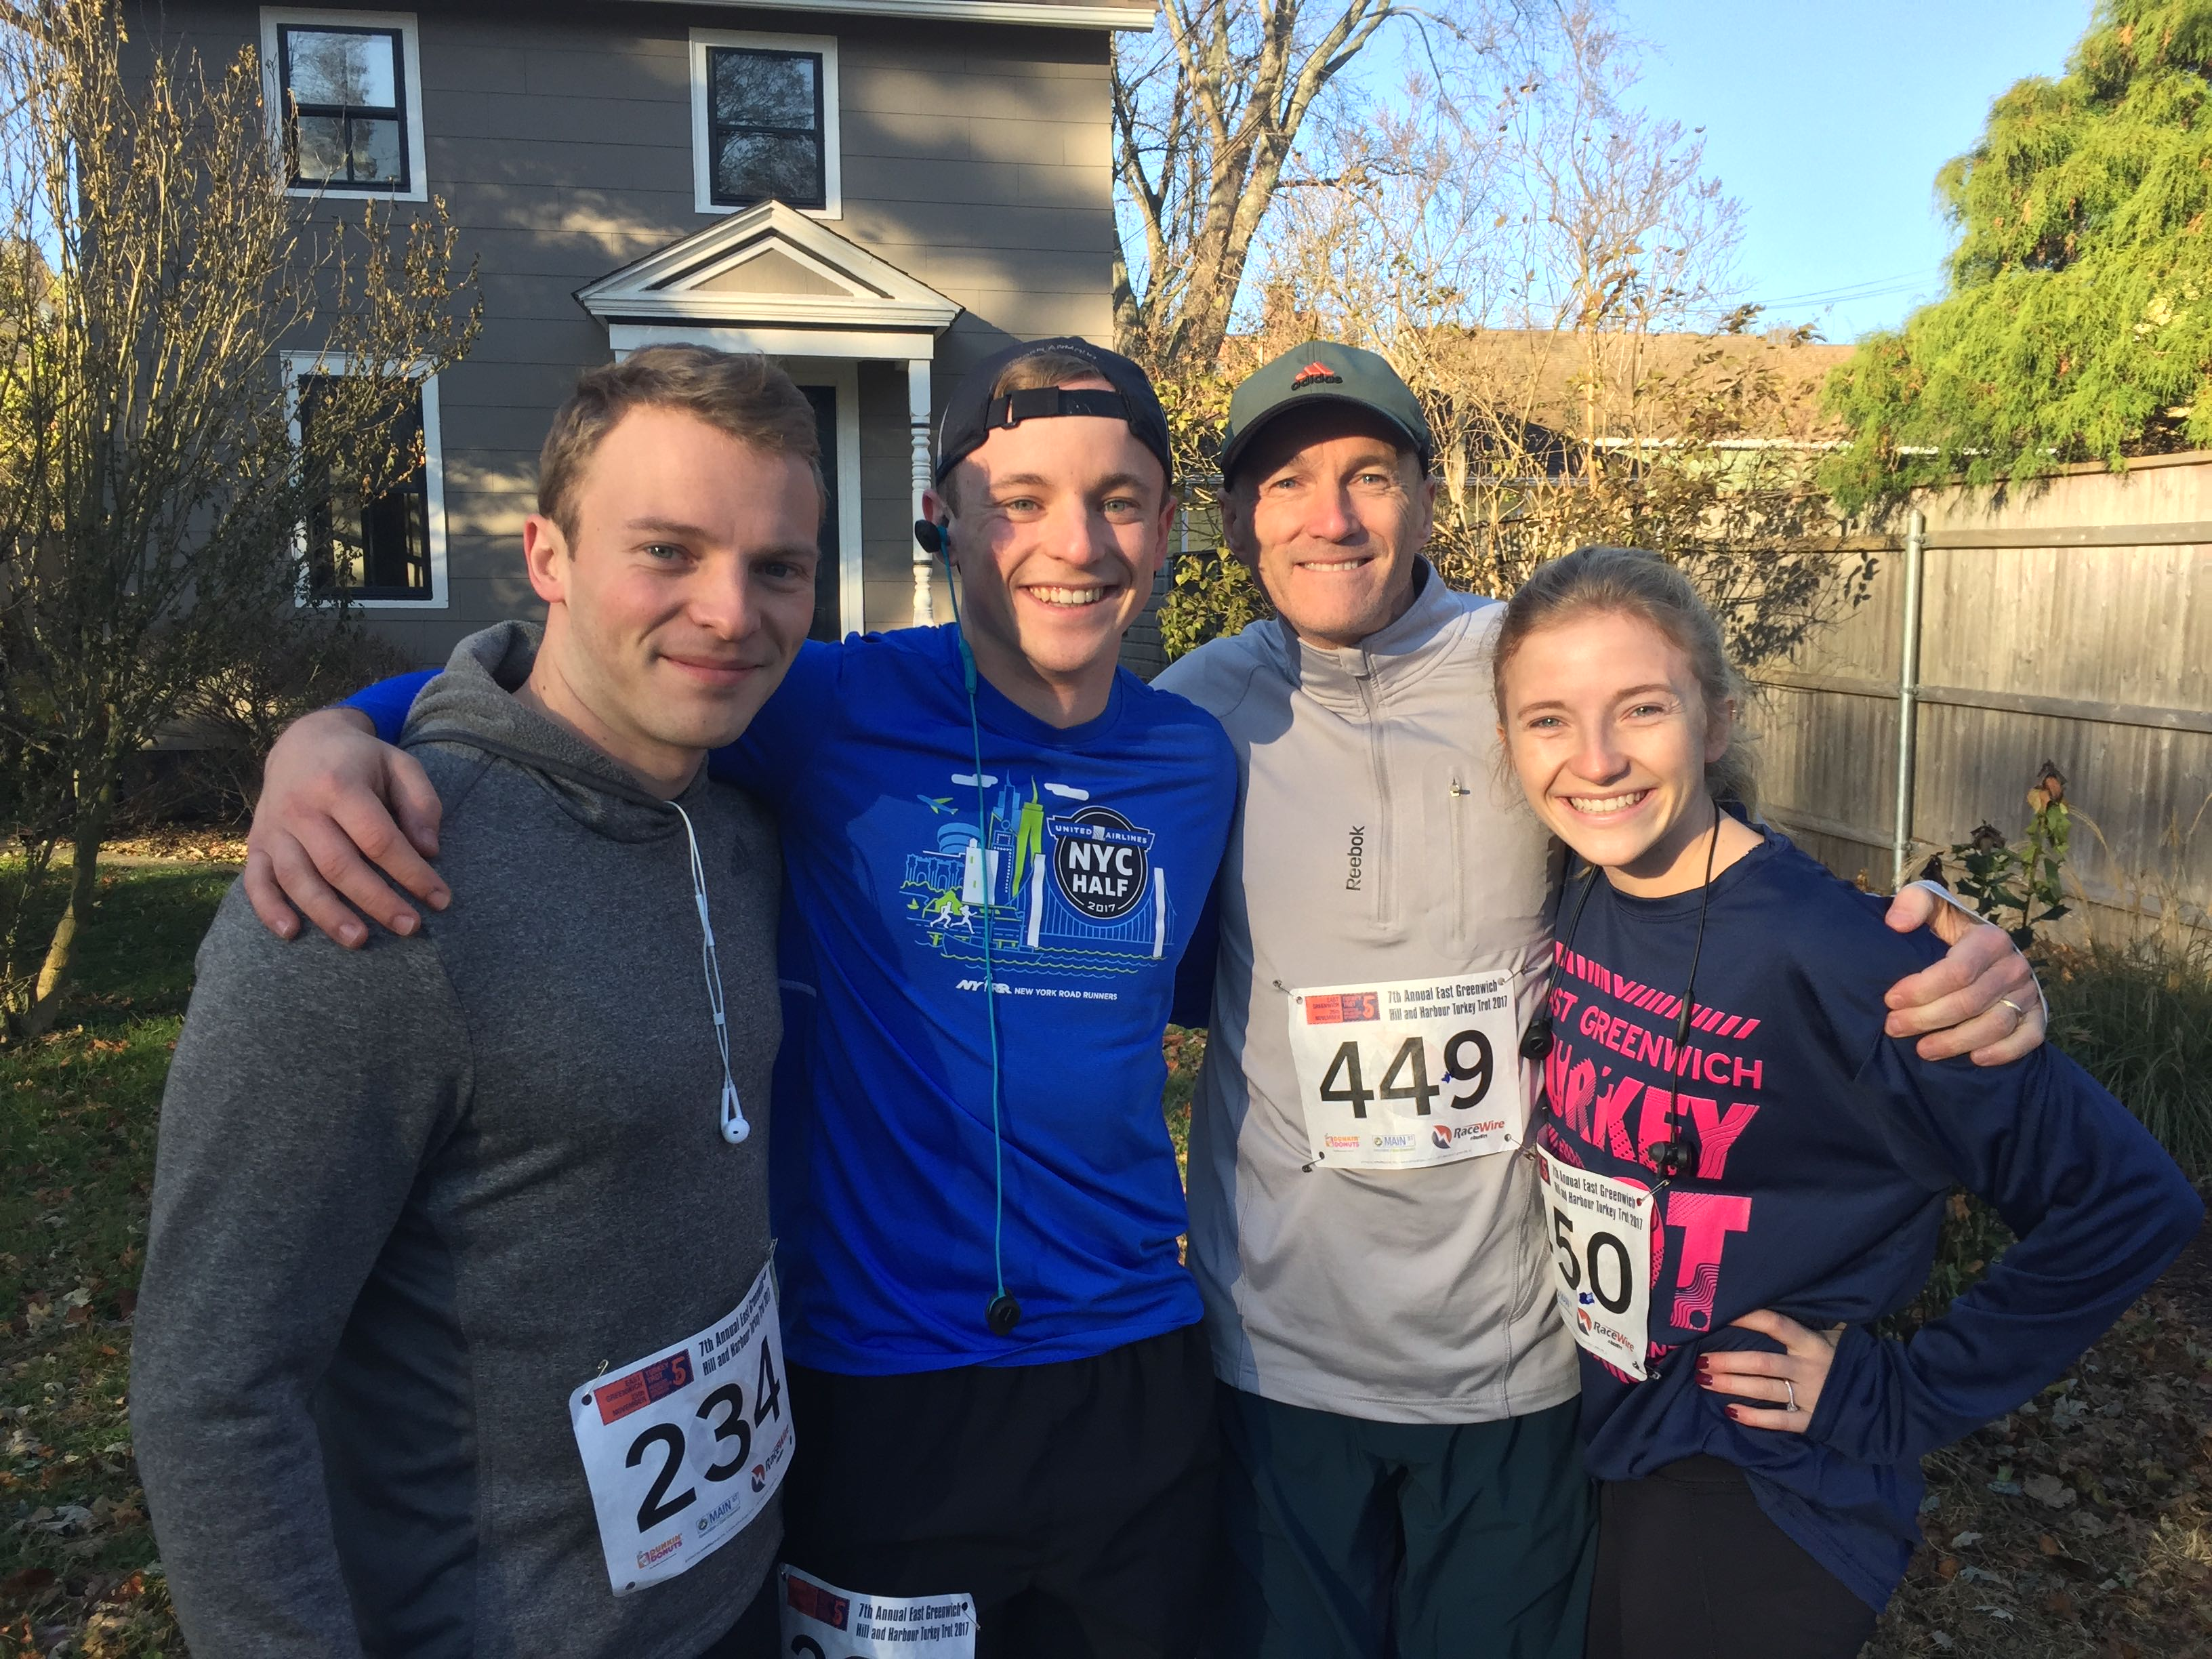 Perkins family runners, from left, Greg, Andrew, Greg senior, and Elizabeth.